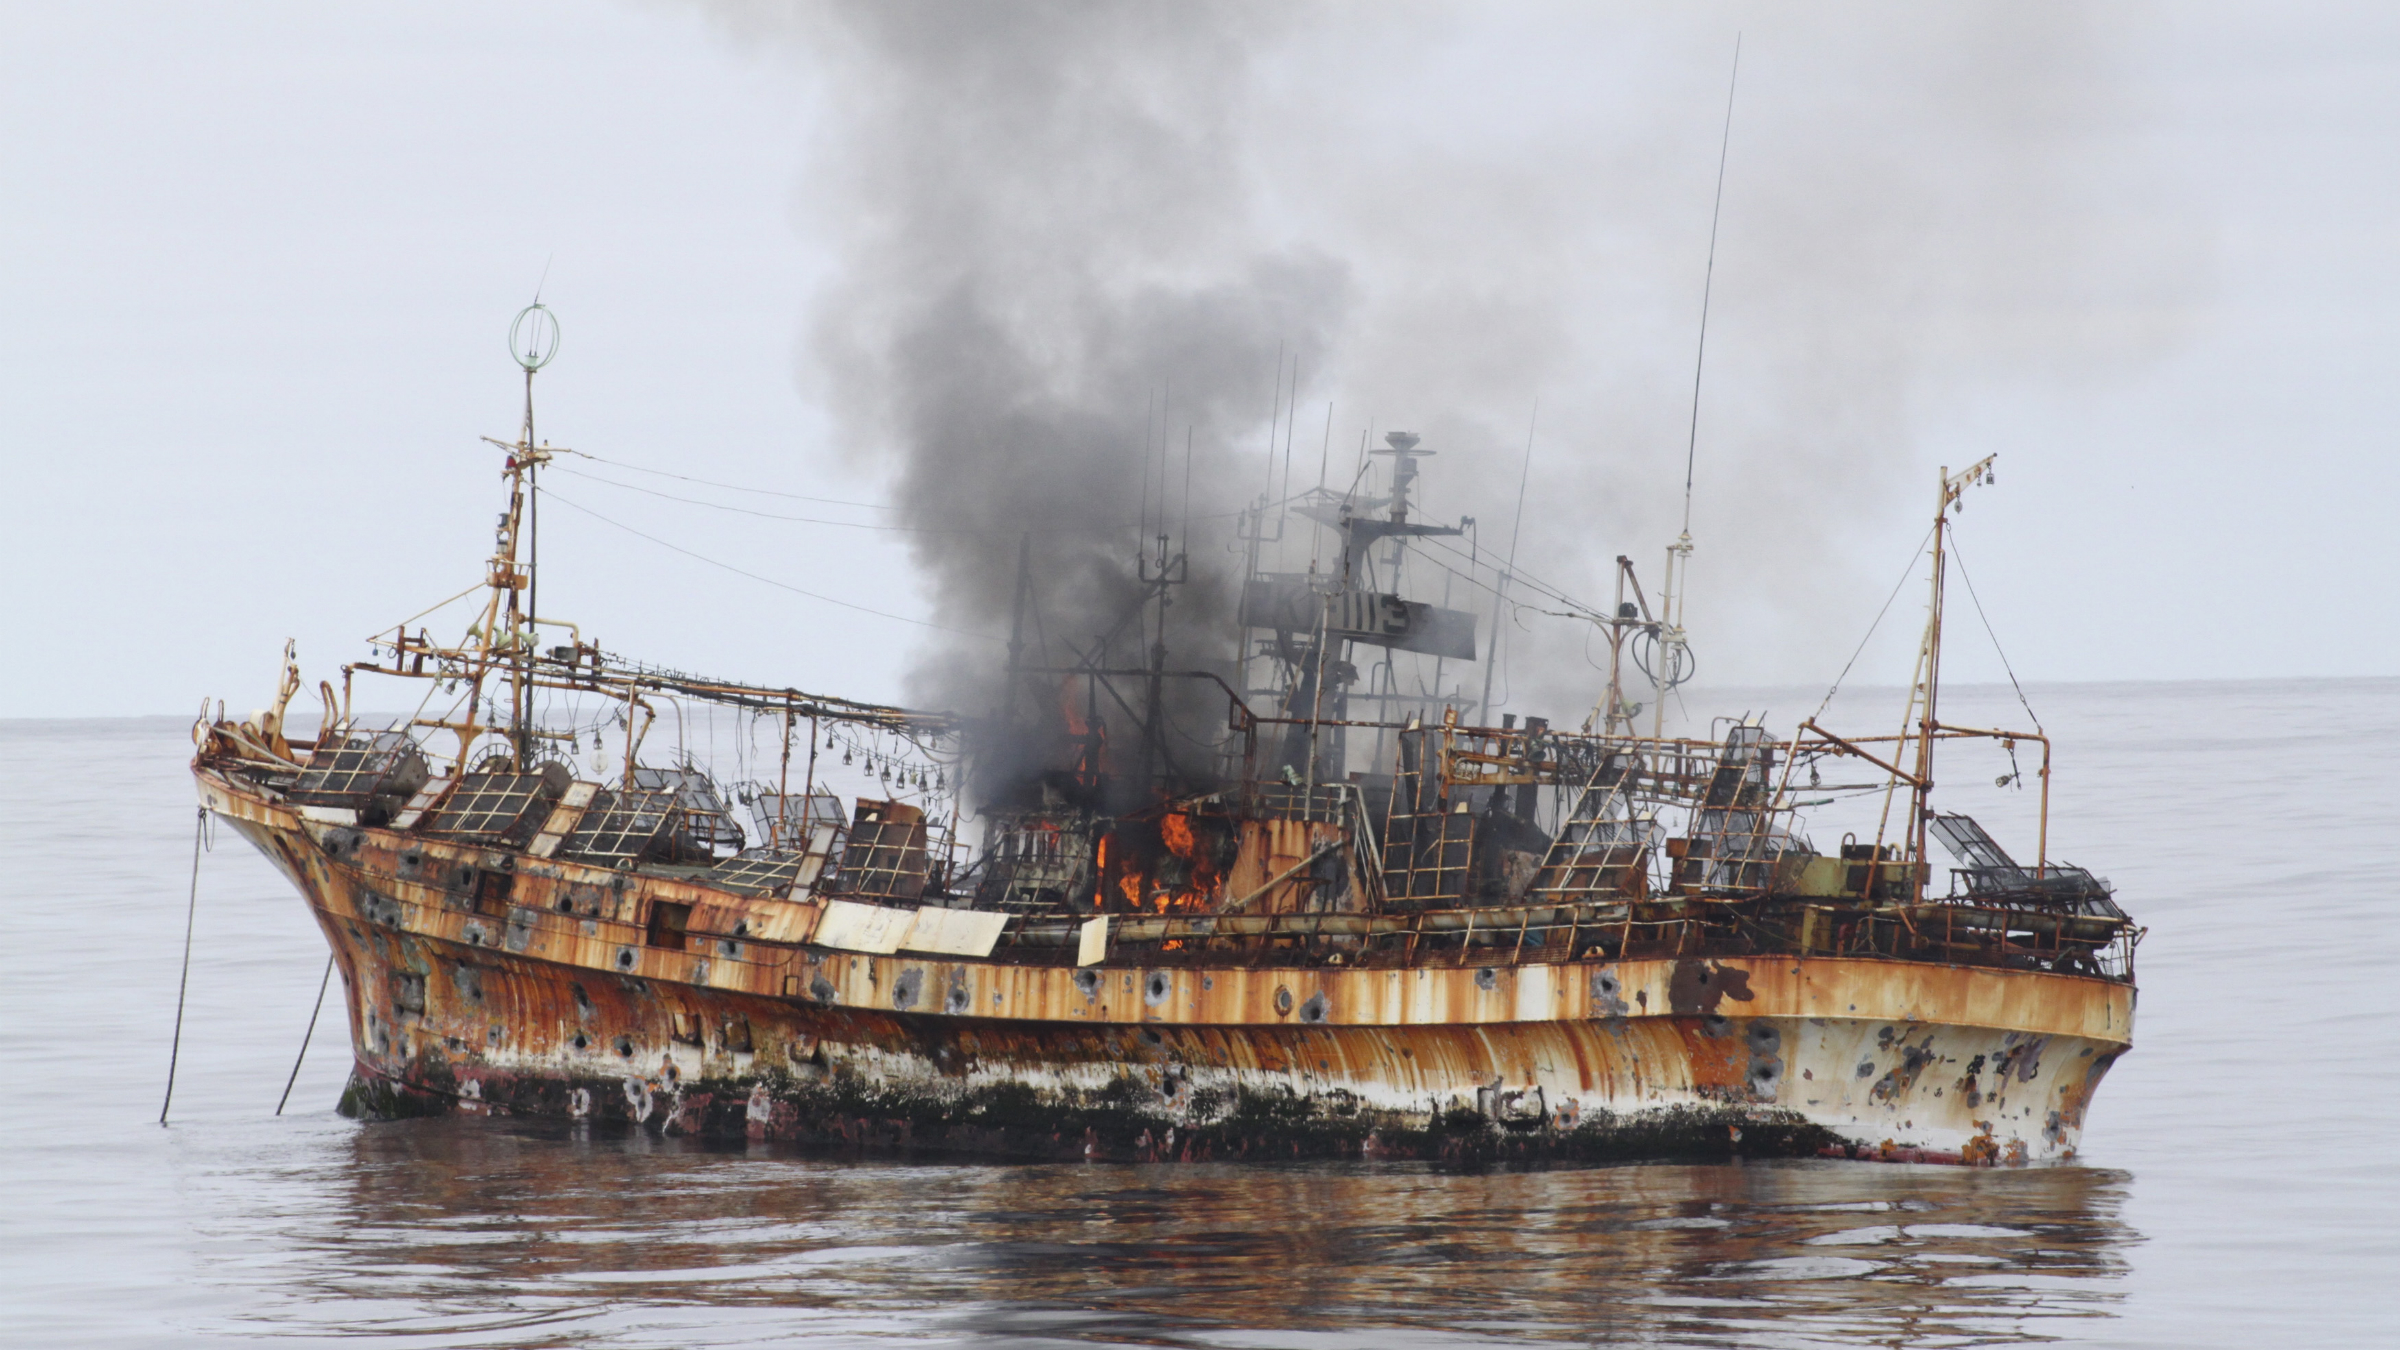 """Japanese fishing vessel, """"Ryou-Un Maru"""", shows significant signs of damage after U.S. Coast Guard Cutter Anancapa fired explosive ammunition into it, 180 miles (about 290 km) west of the Southeast Alaskan coast April 5, 2012. The U.S. Coast Guard opened fire on Thursday on a derelict Japanese fishing vessel washed out to sea by last year's devastating tsunami in a bid to sink it and eliminate a threat to navigation, a spokesman for the agency said. REUTERS/U.S. Coast Guard/Handout"""